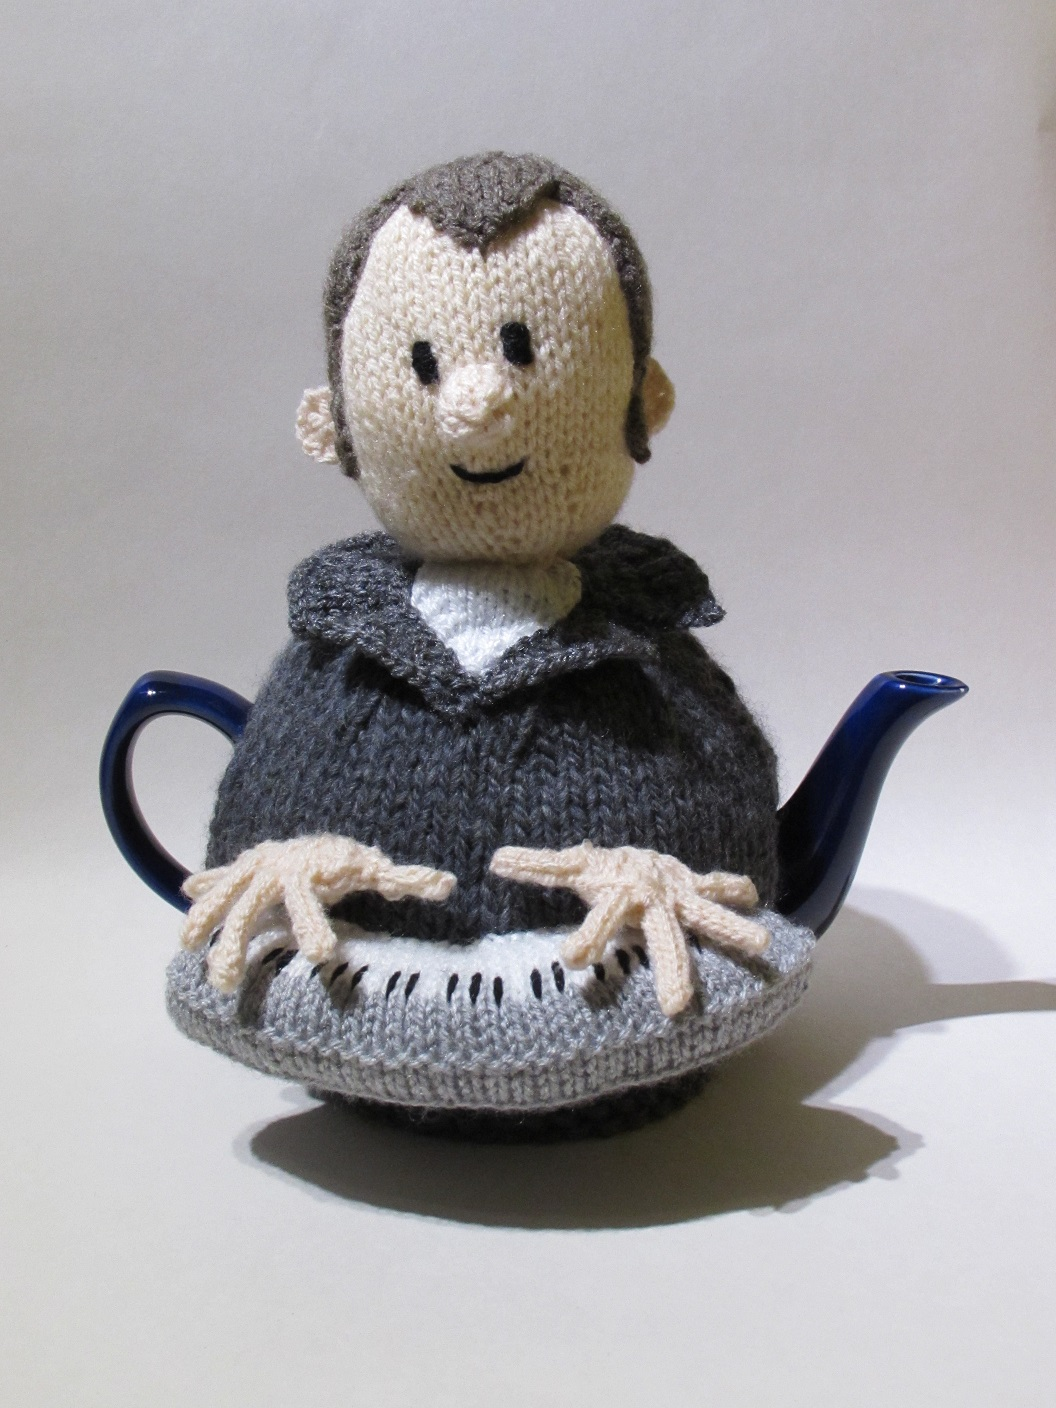 Music man keyboard player tea cosy knitting pattern tea cosy knitting pattern music man keyboard player bankloansurffo Images